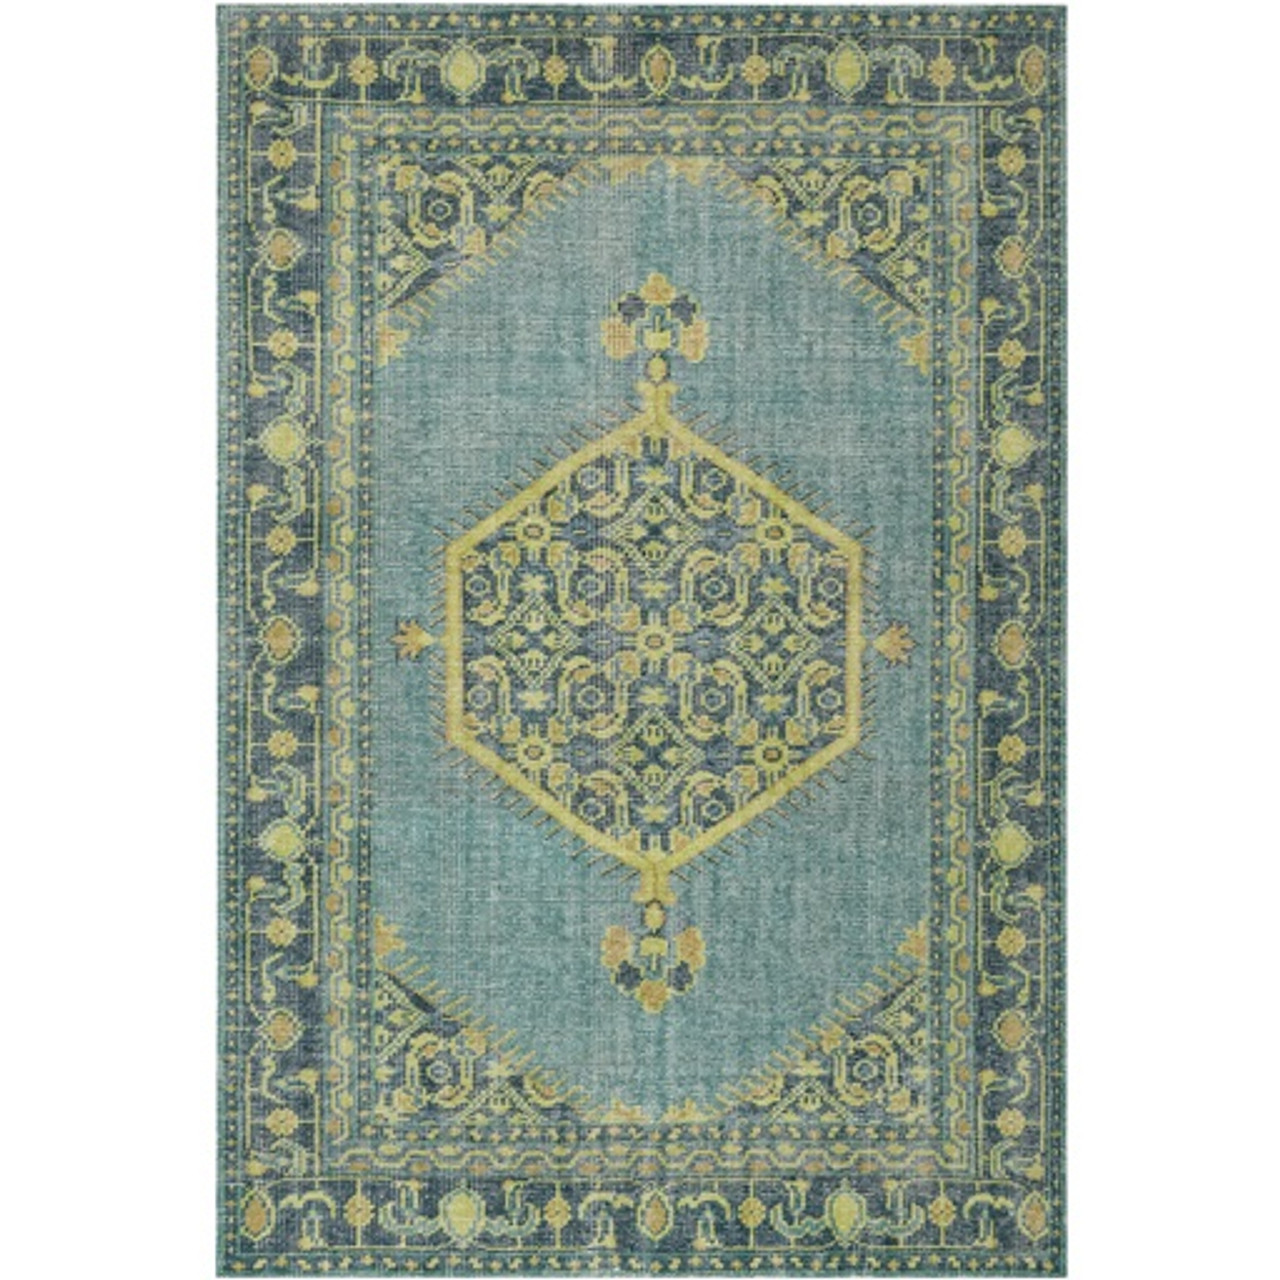 2 X 3 Magic Ride Teal Blue Emerald Green And Lemon Yellow Hand Knotted Wool Area Throw Rug 30993473